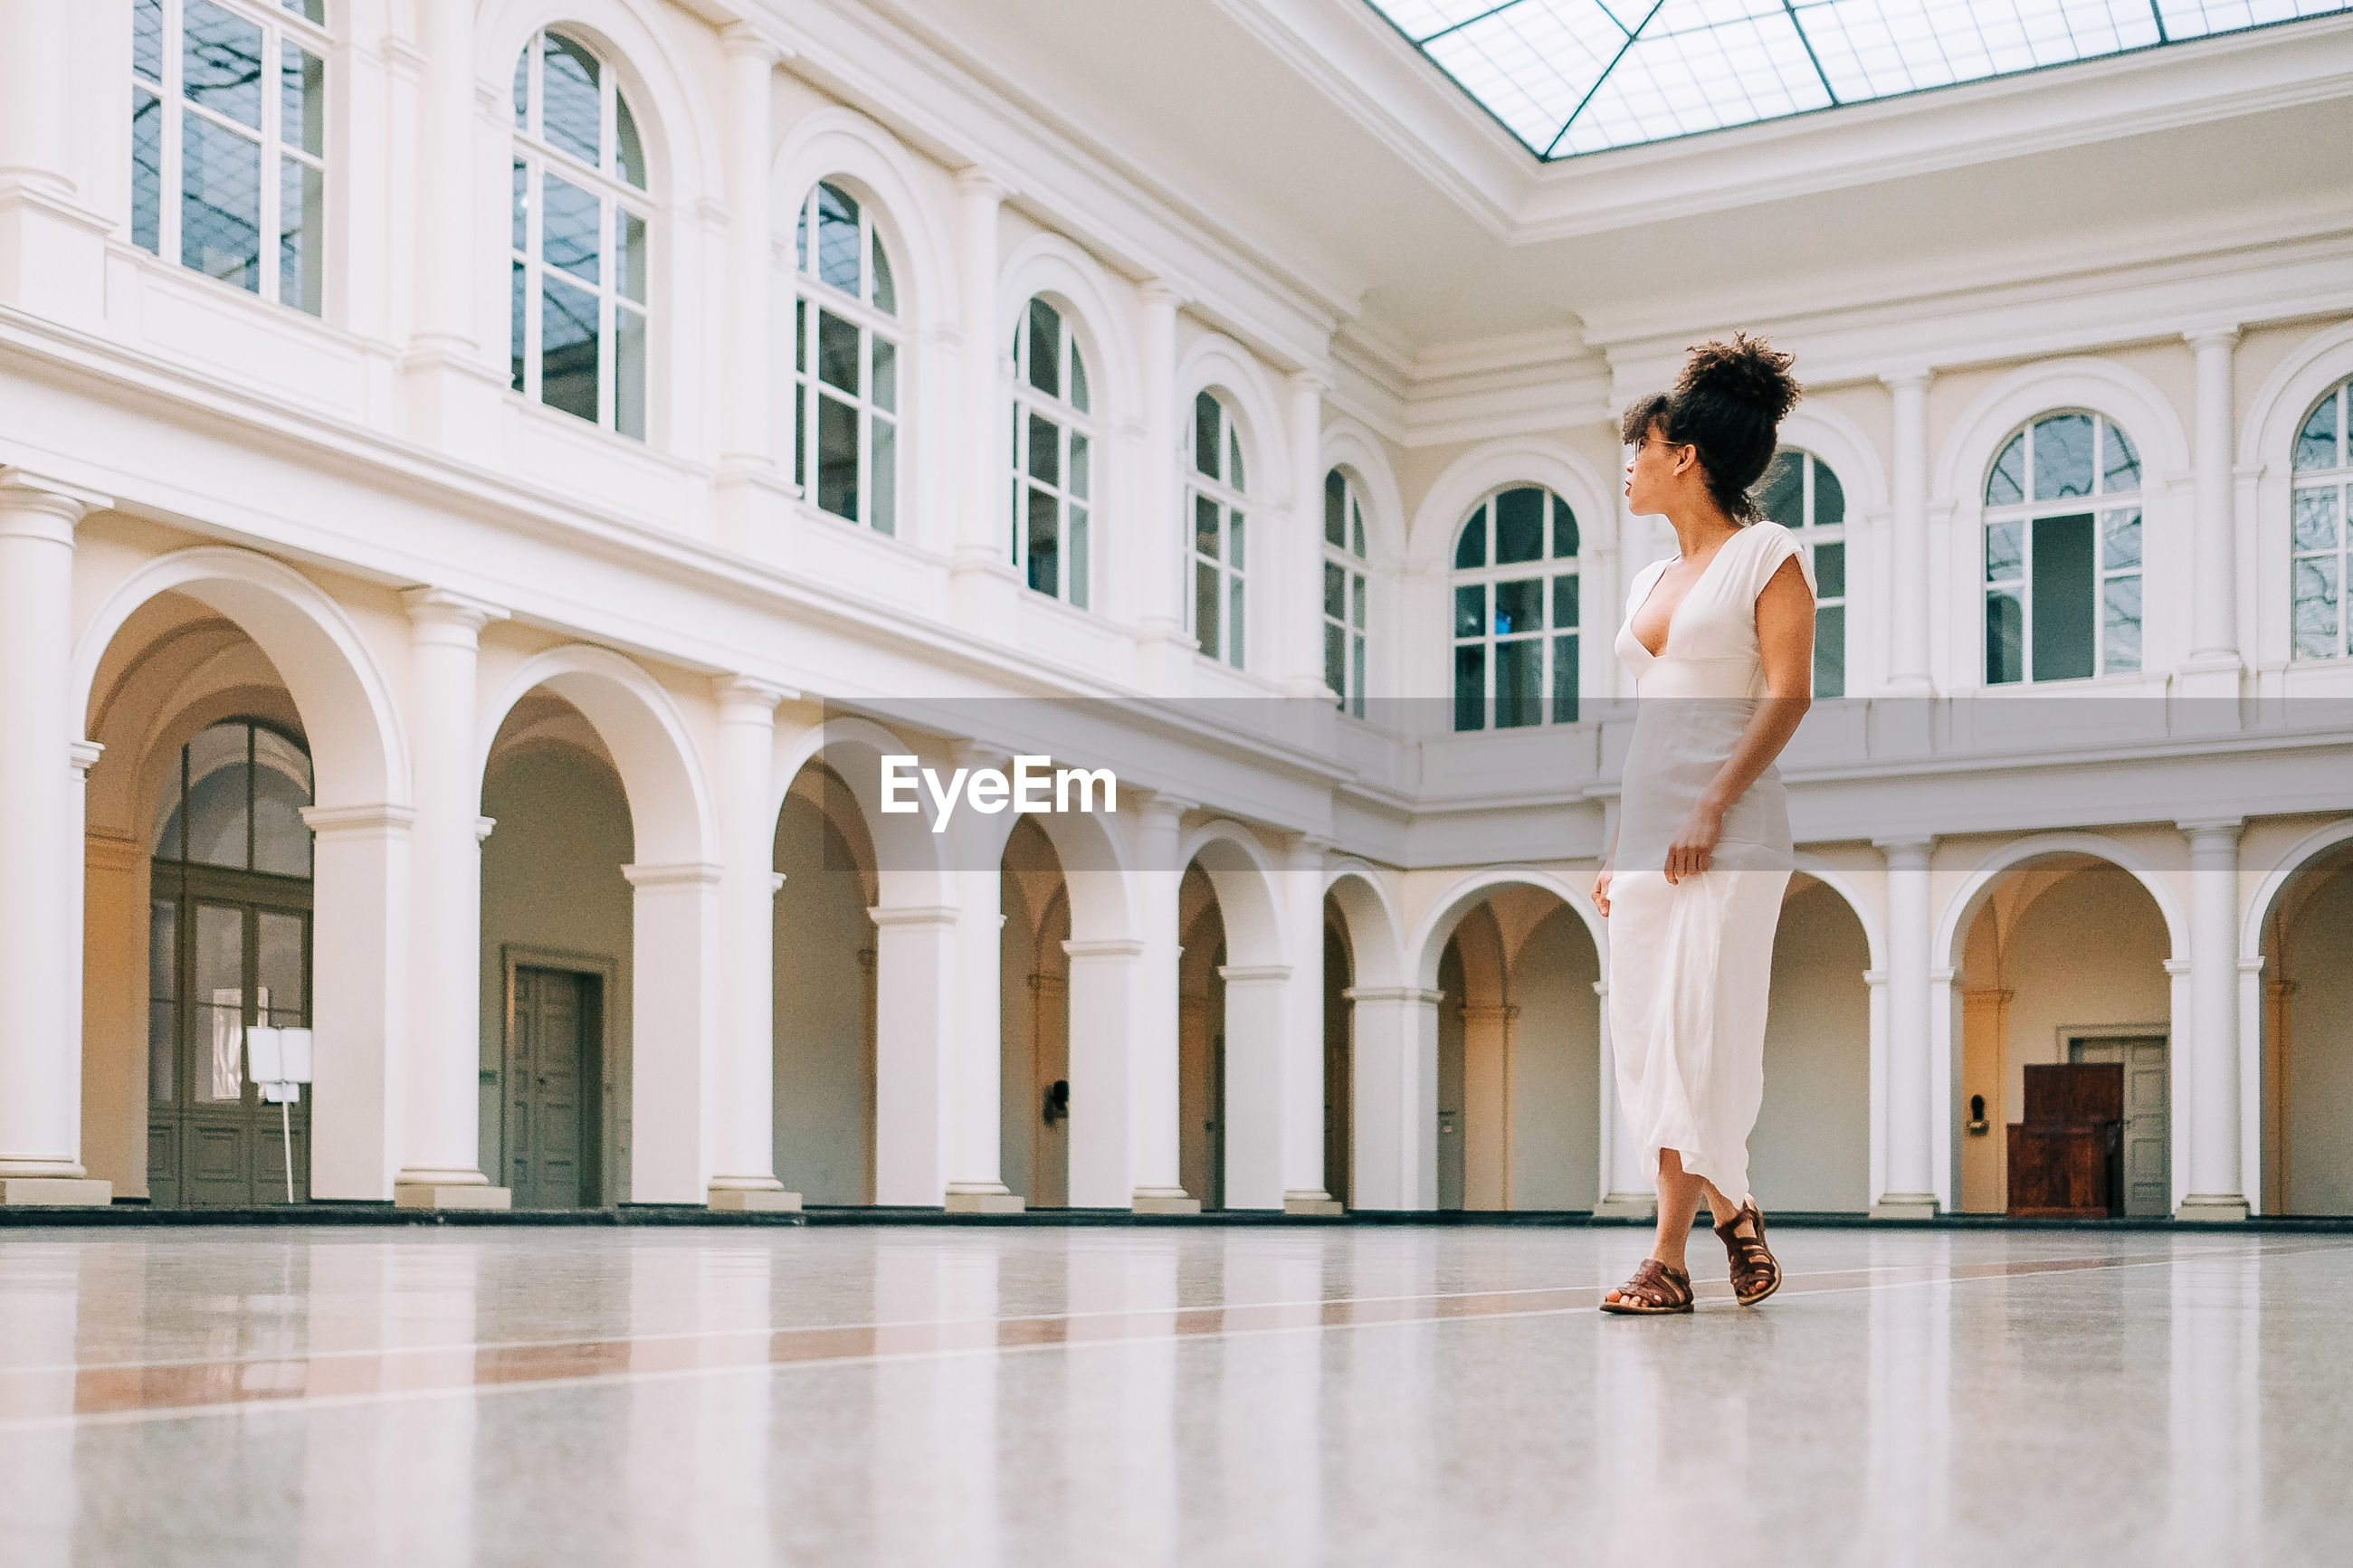 Fashionable woman standing on floor of building